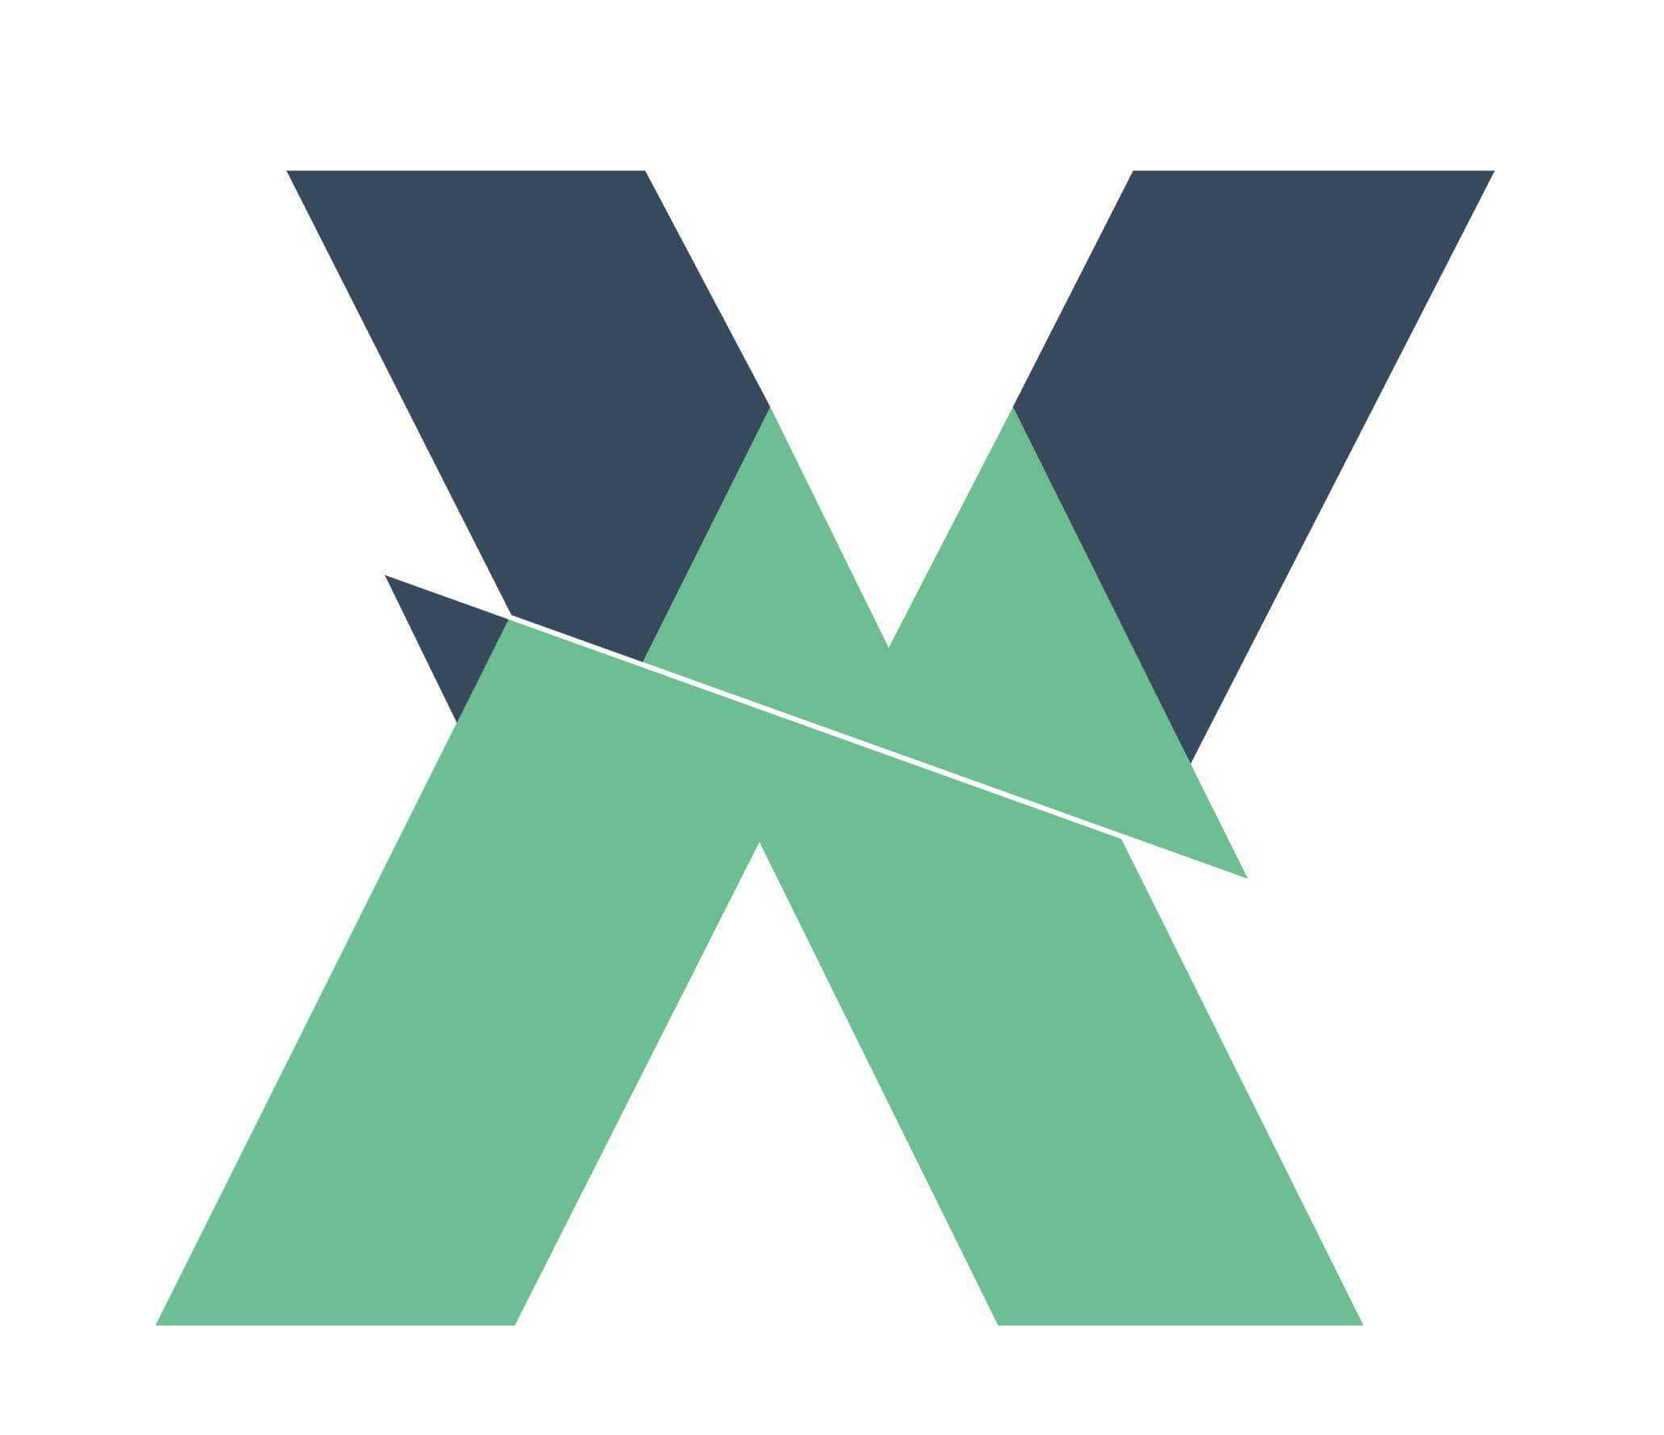 Vuex article illustration with a big X capital letter